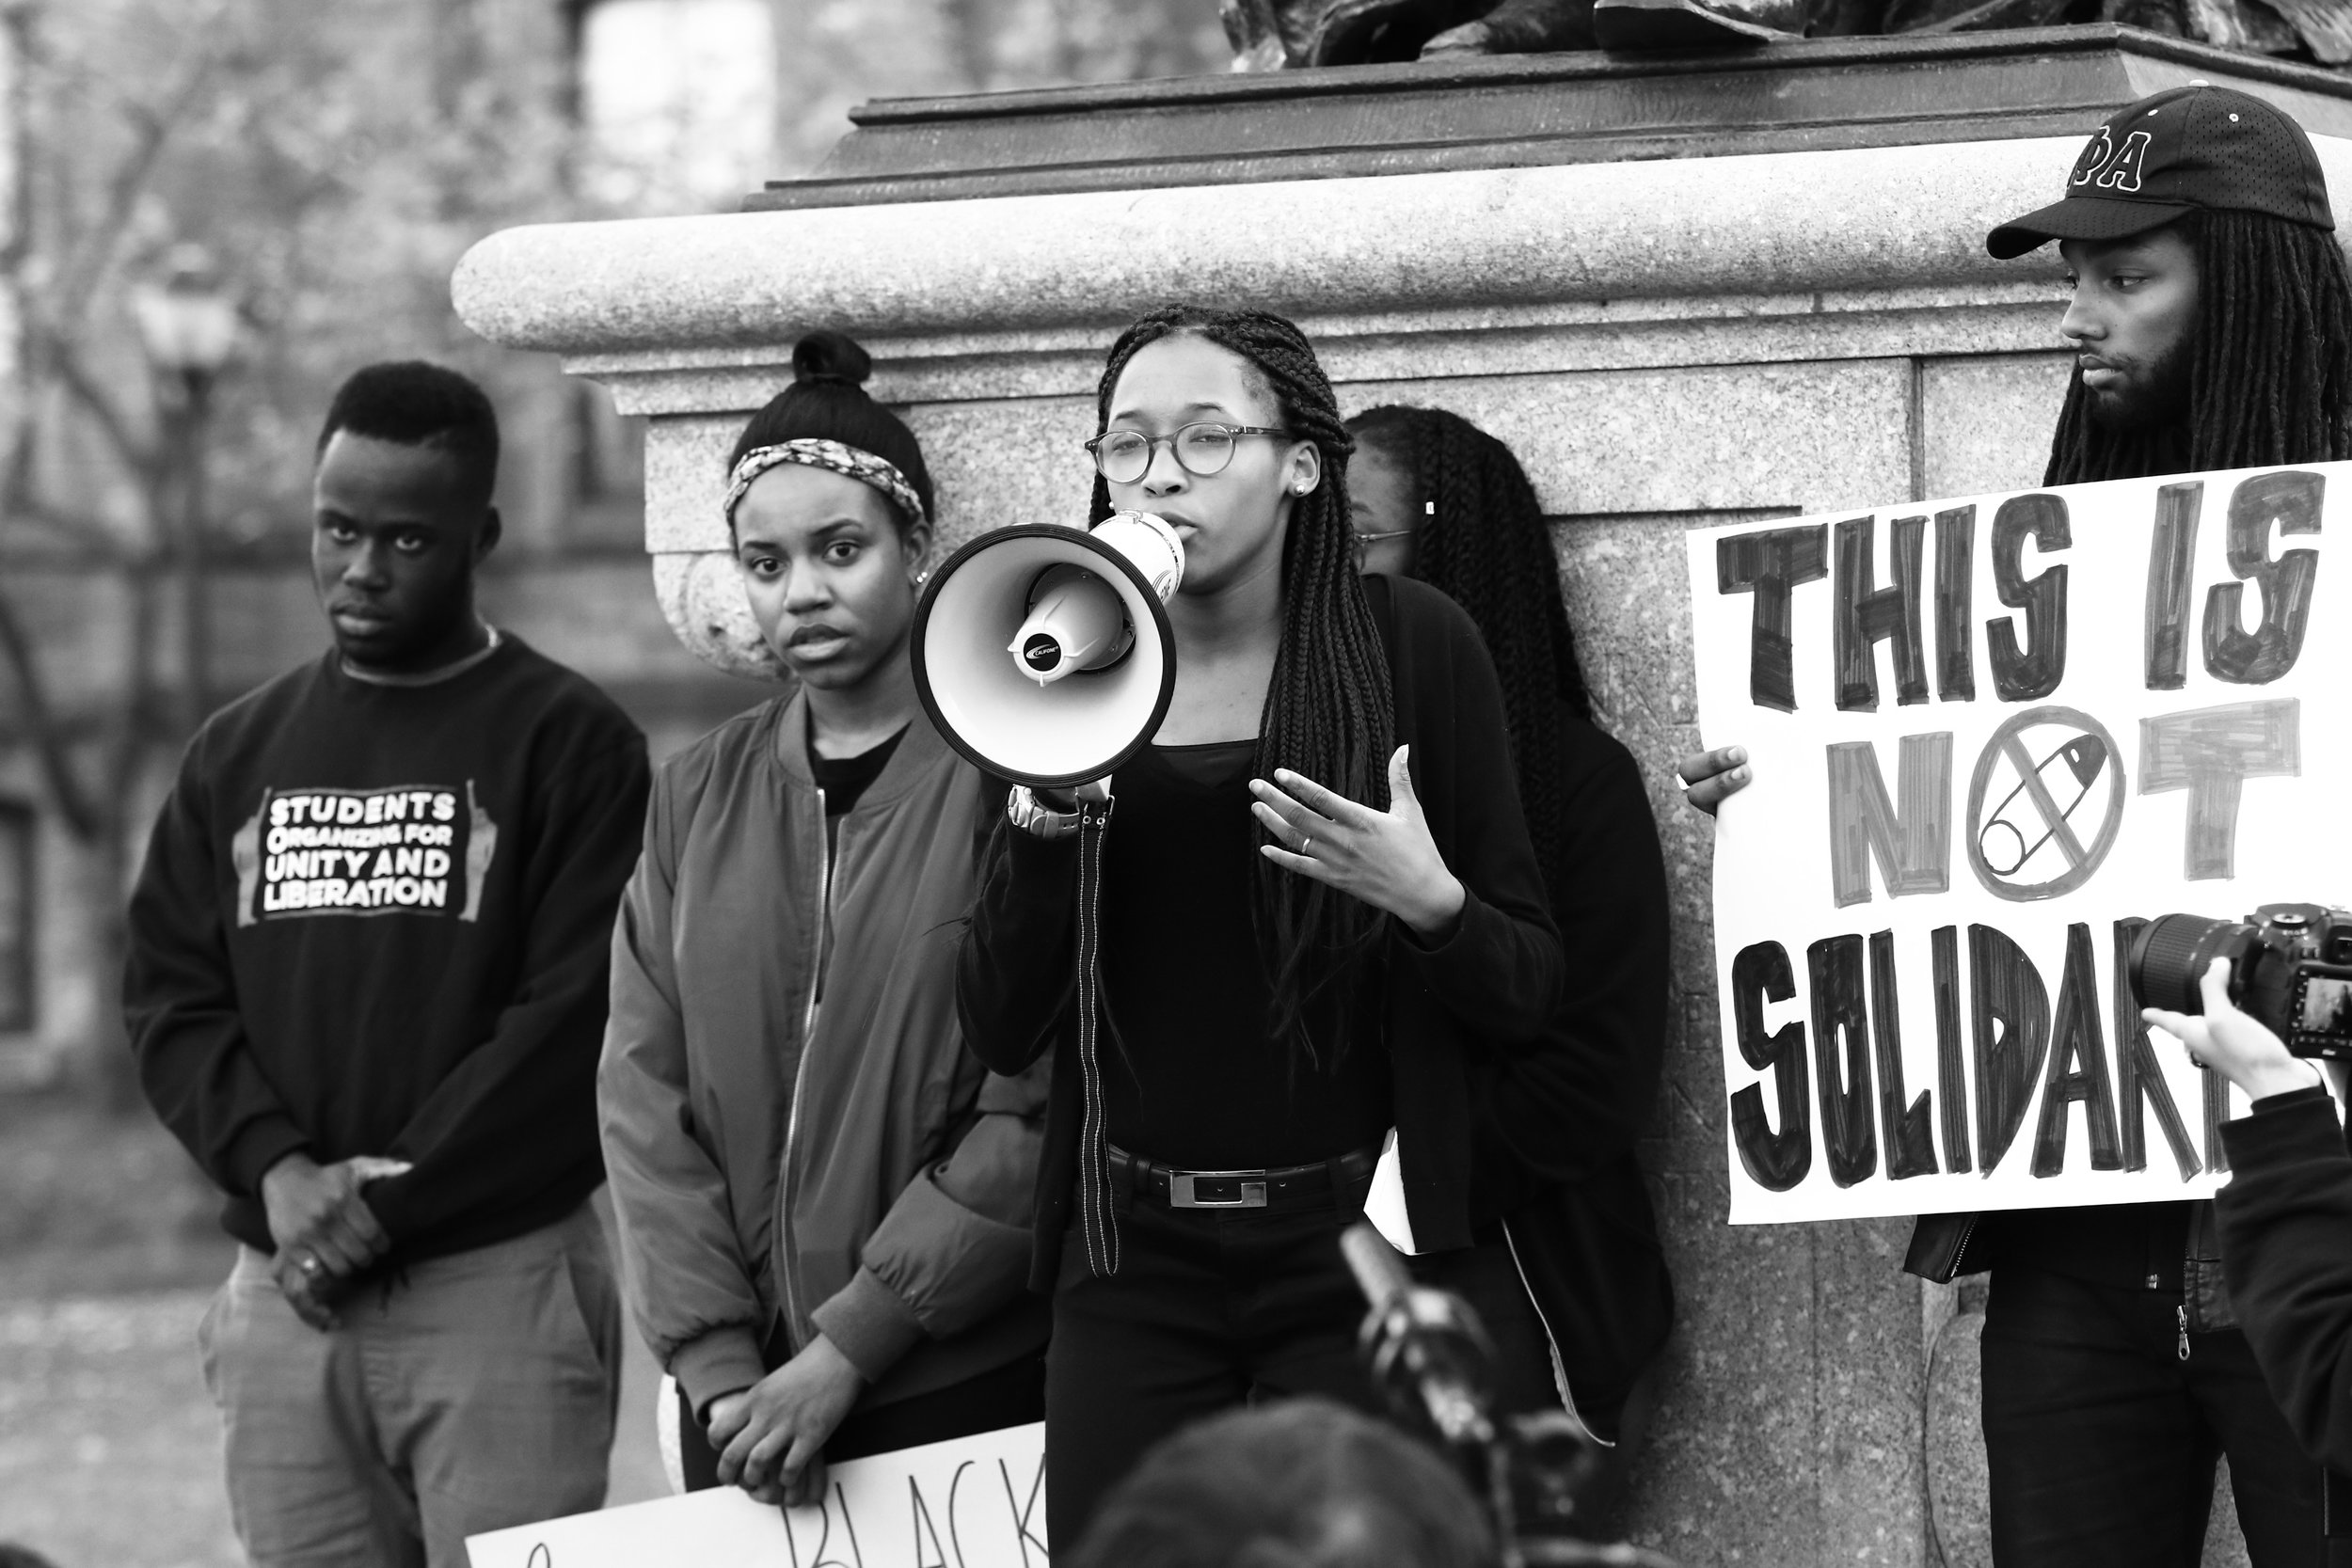 Student walkout in response to racial harassment at the University of Pennsylvania, organized by Students Organizing for Unity and Liberation. Photo credit: Charles H.F. Davis III, 2016